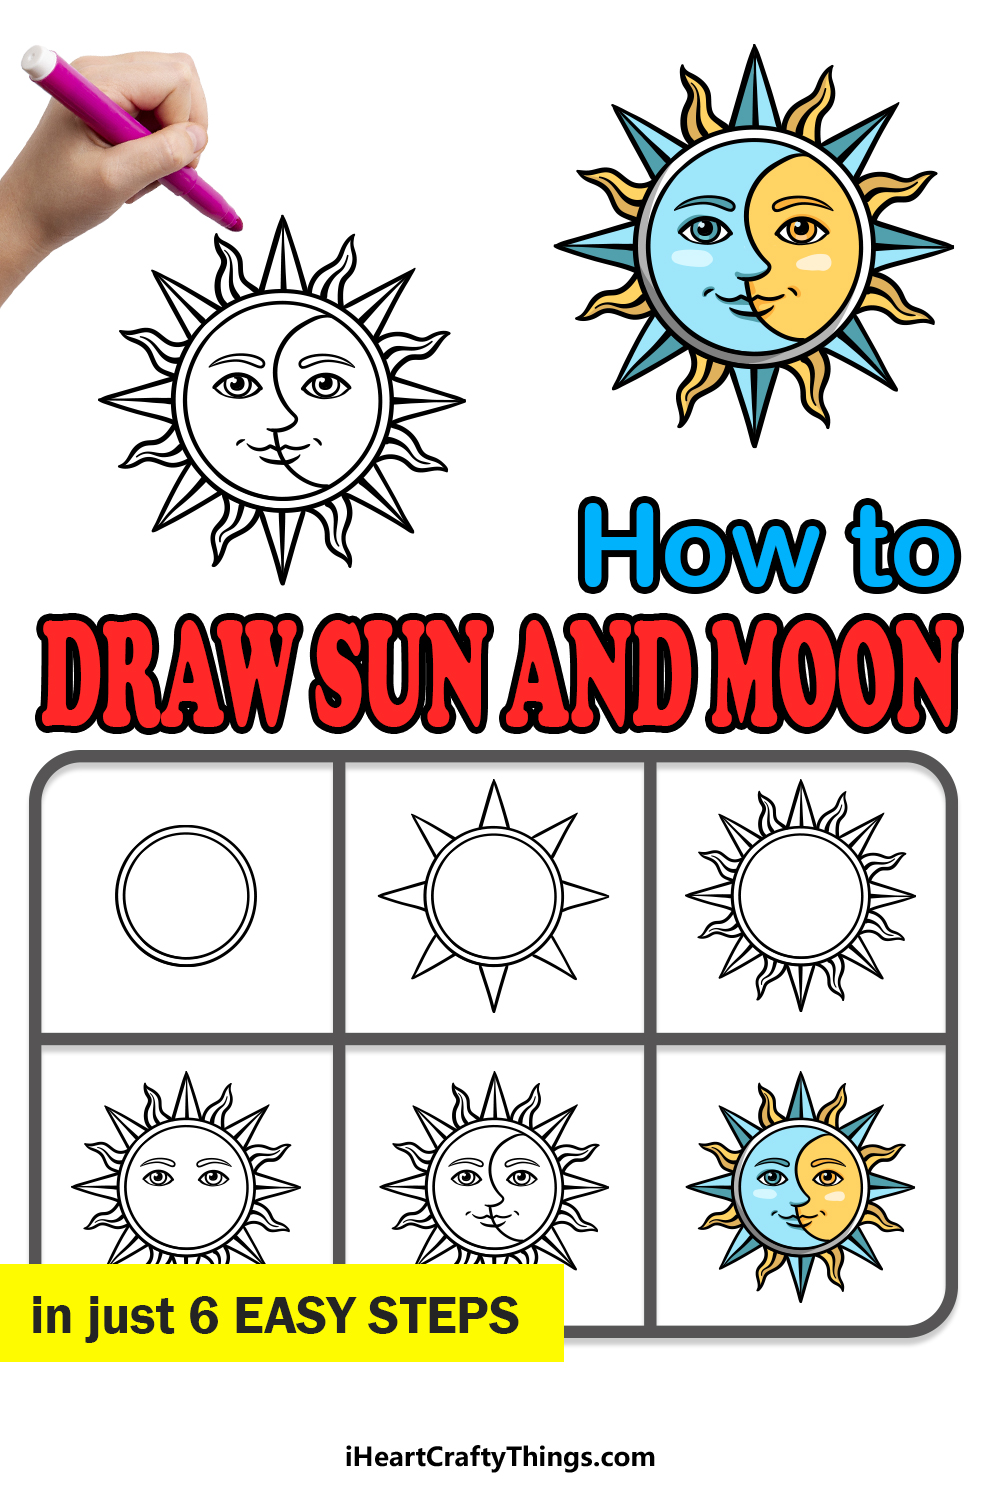 how to draw sun and moon in 6 easy steps